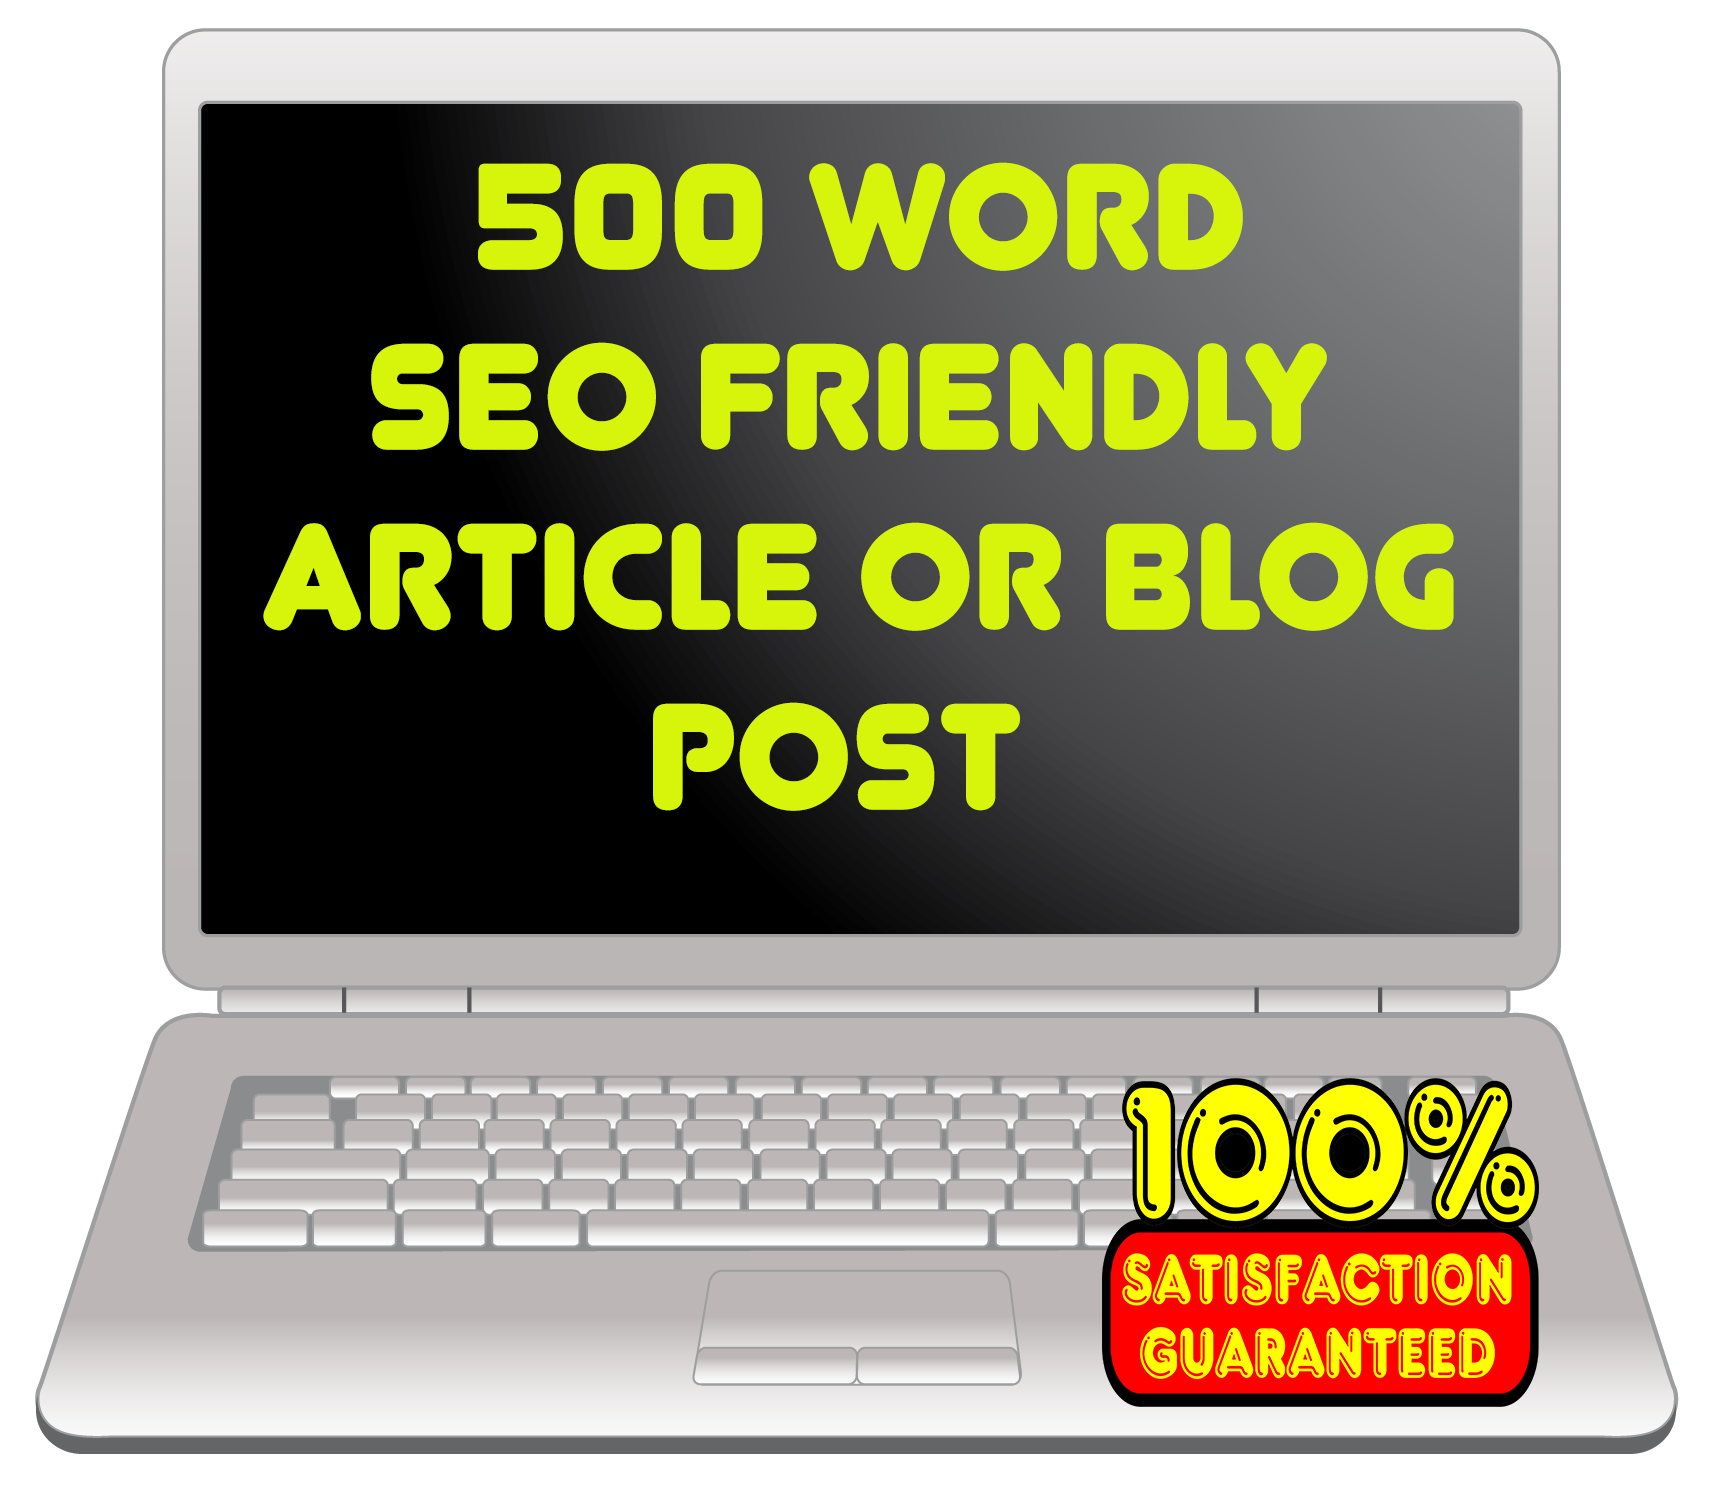 500 word SEO blog post or article for website